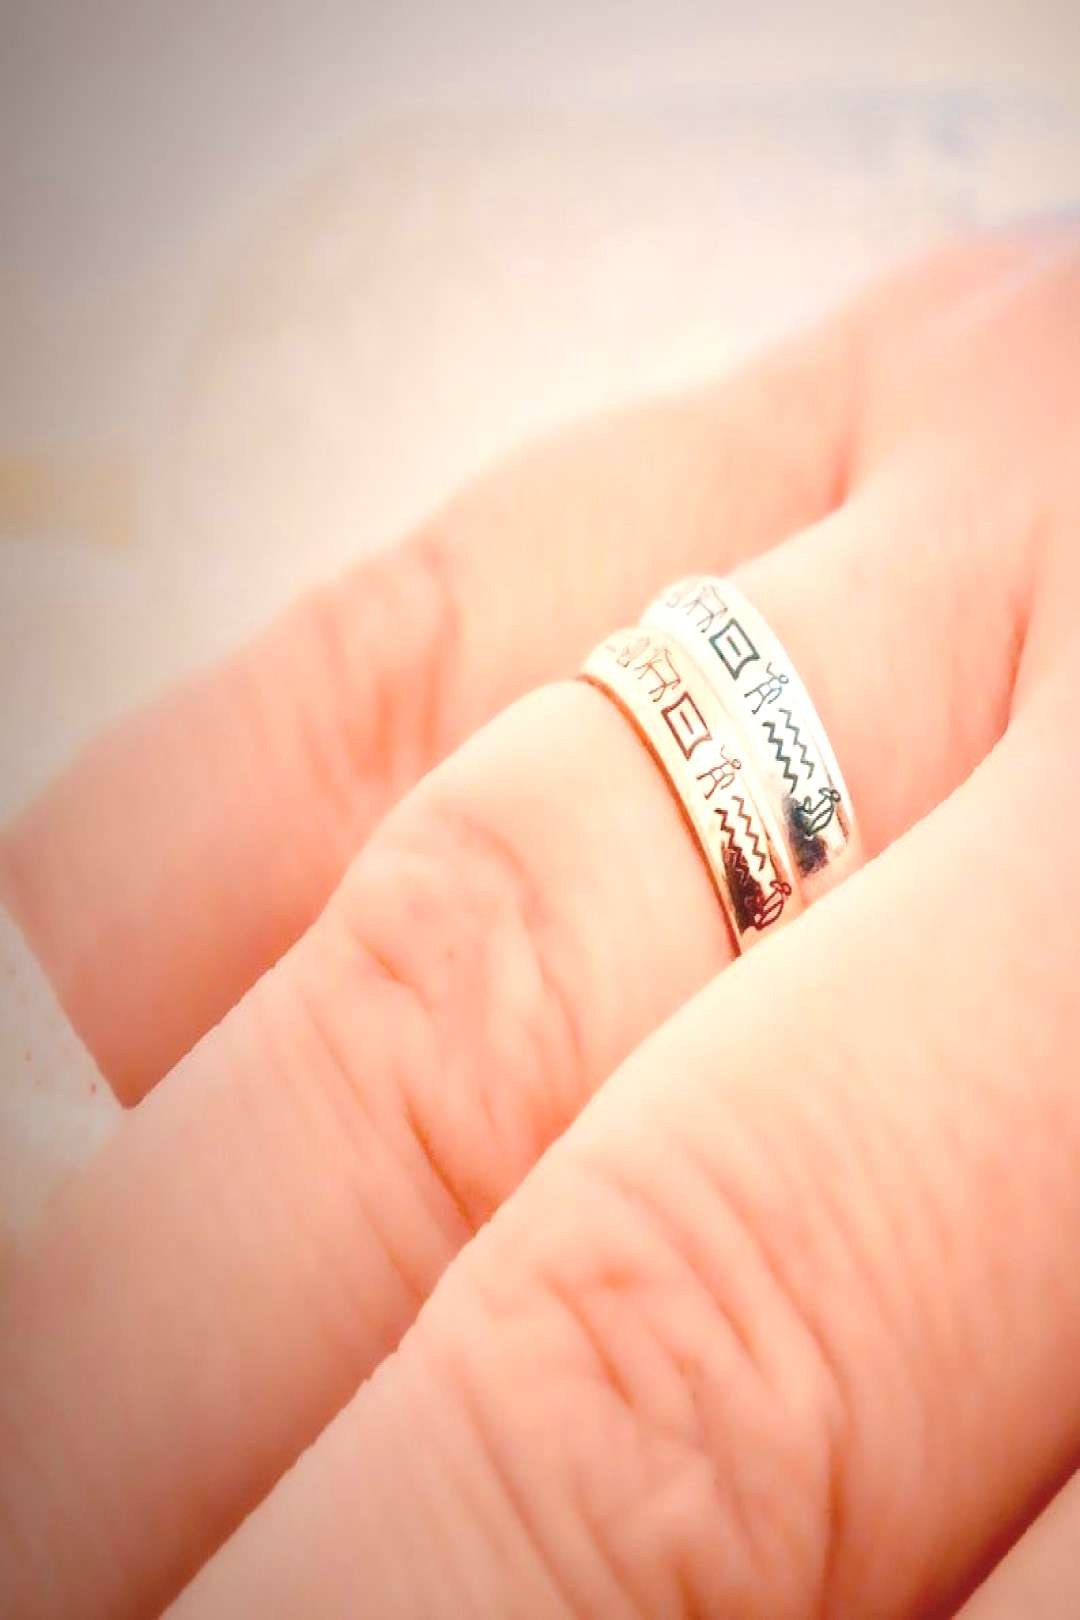 This Hieroglyph ring is 14k Solid GOLD ( not filled or plated). Personalized hieroglyph solid gold